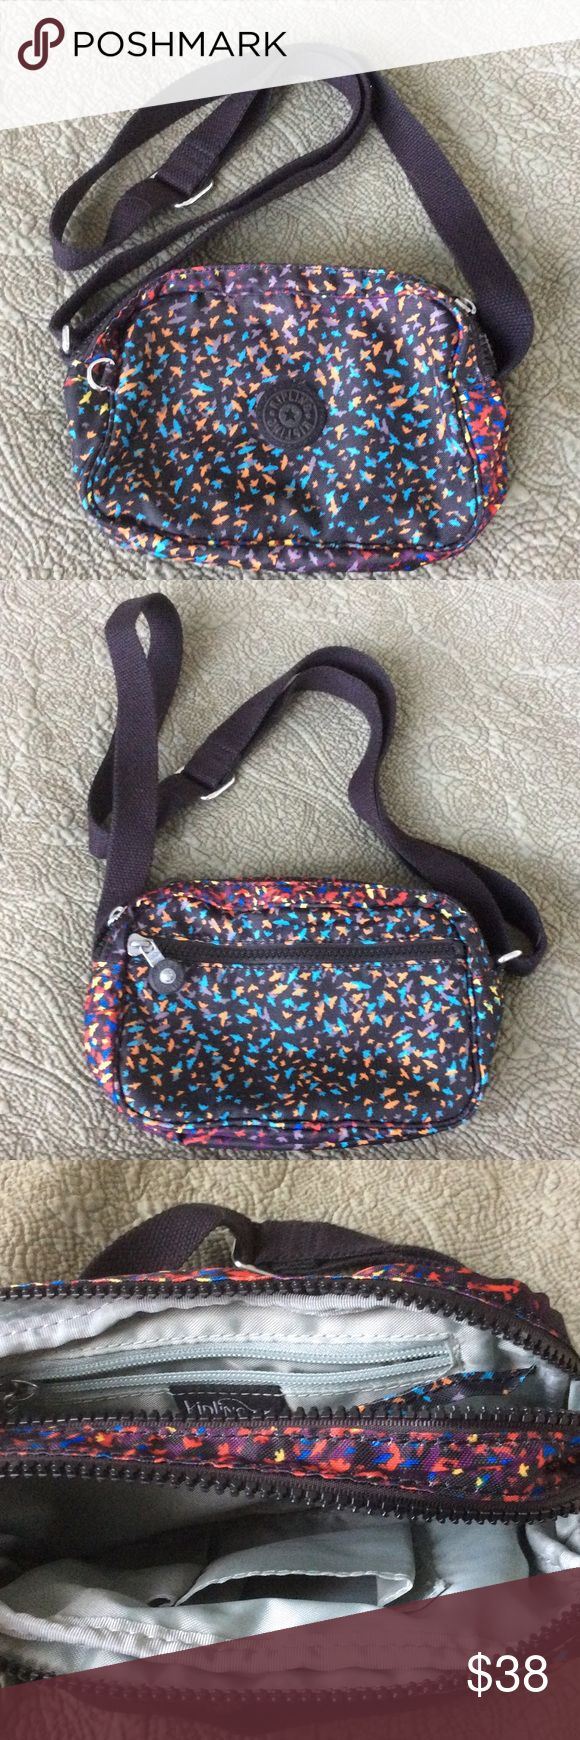 """EUC Kipling cross body bag Price firm.   Measures about 8"""" x 5"""" x 3"""" 2 zipped compartments in center, and one outside Adjustable strap Red, yellow, orange, blue, and purple birds on a black background Kipling Bags Crossbody Bags"""